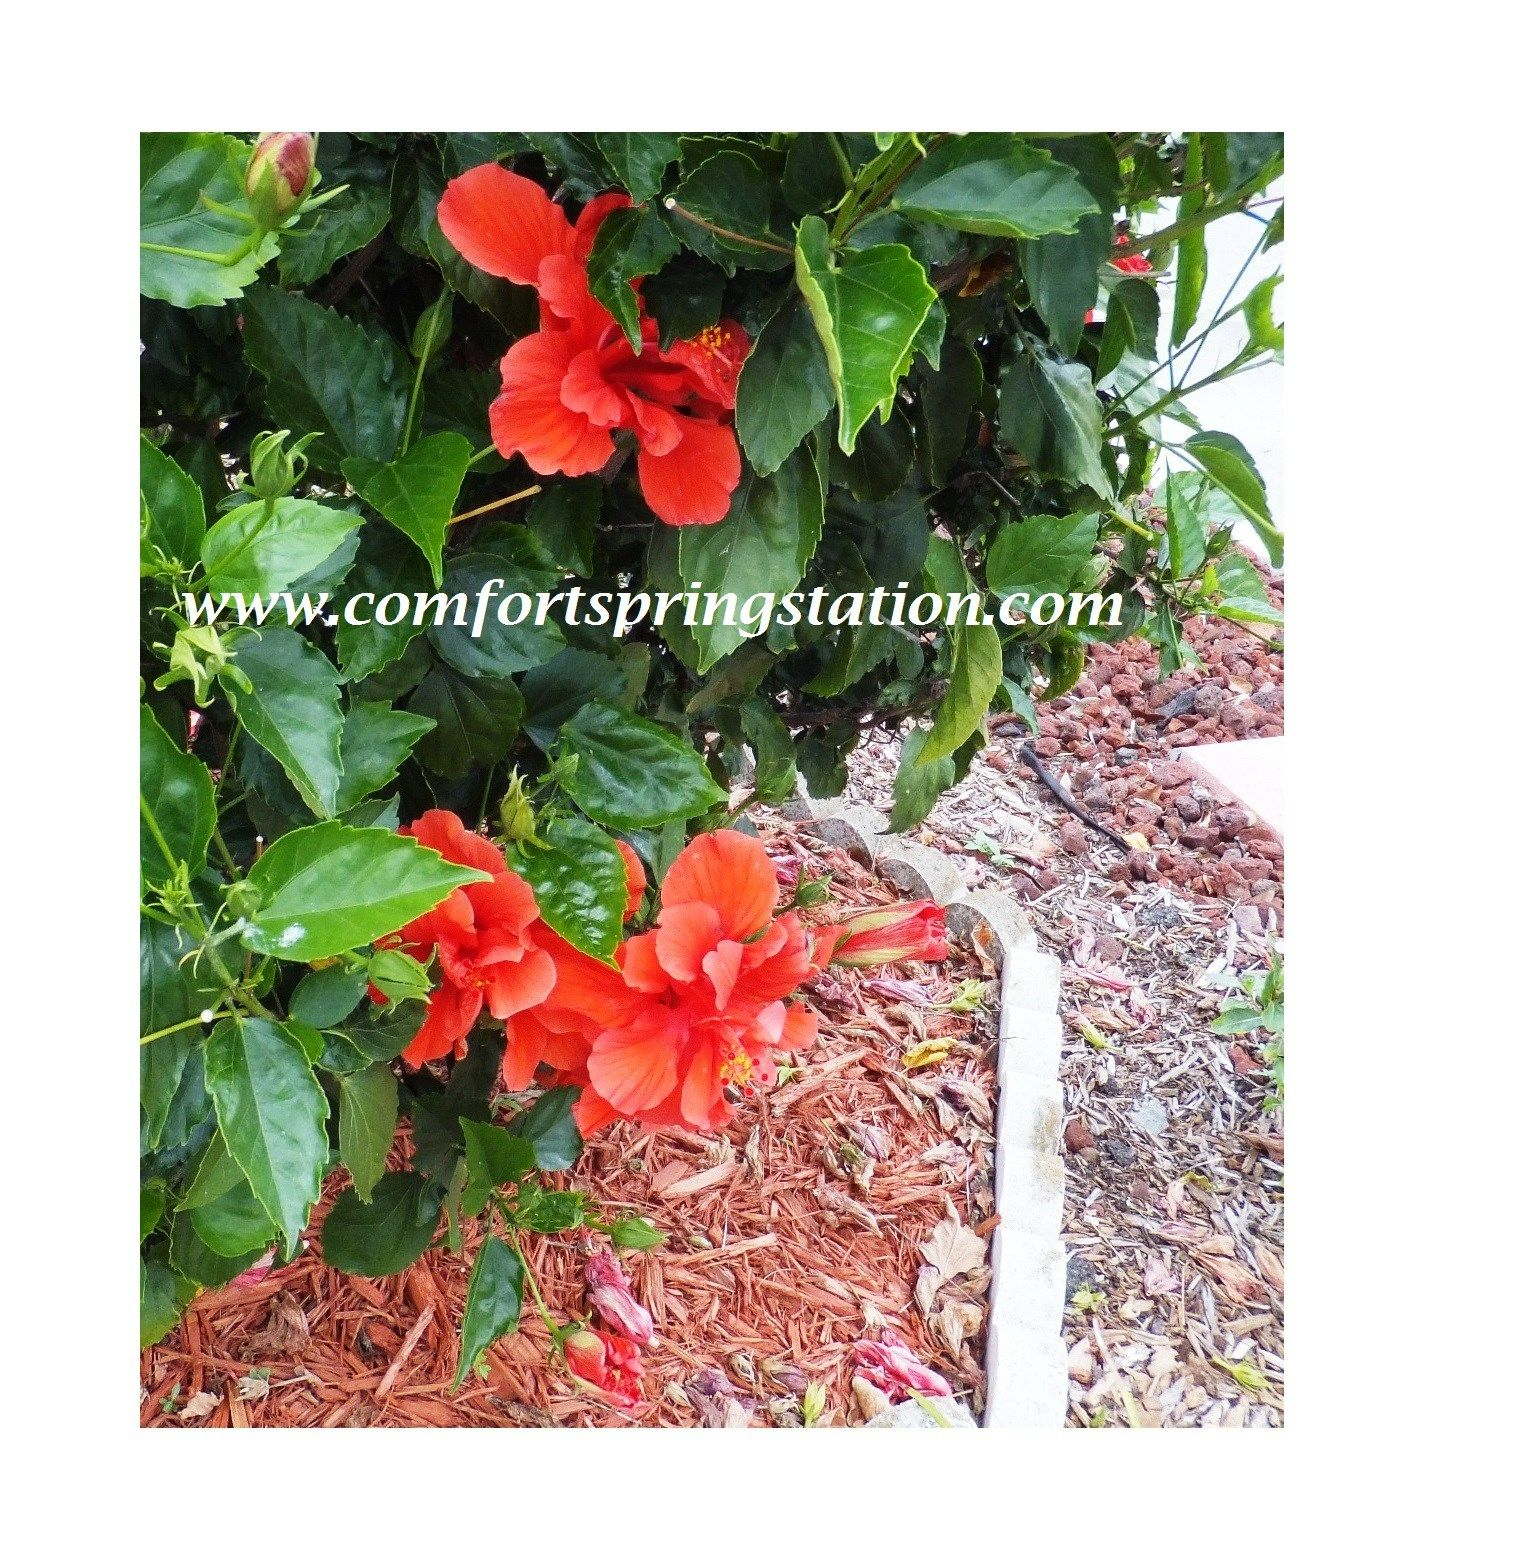 Red hibiscus bush garden garden landscape landscaping hibiscus one of the main features of my front yard is the red hibiscus bush on a berm behind the mailbox that is the lowest point in the yard and the hibiscus izmirmasajfo Choice Image